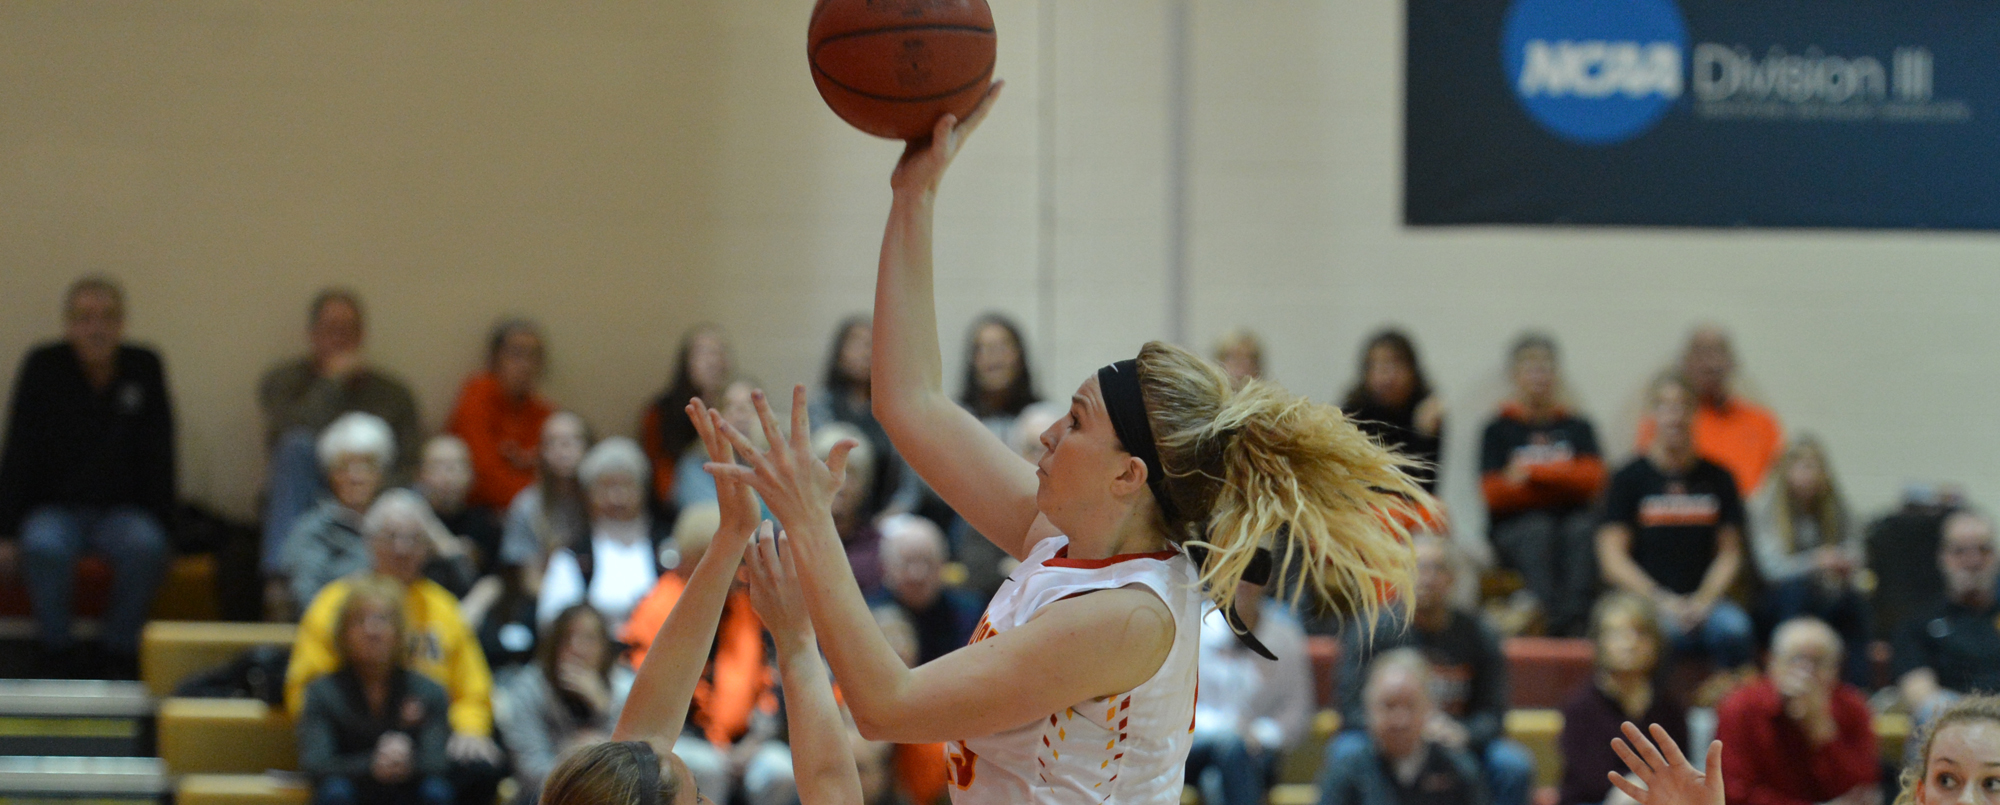 Katie Ahrenholtz scored 10 points off the bench.